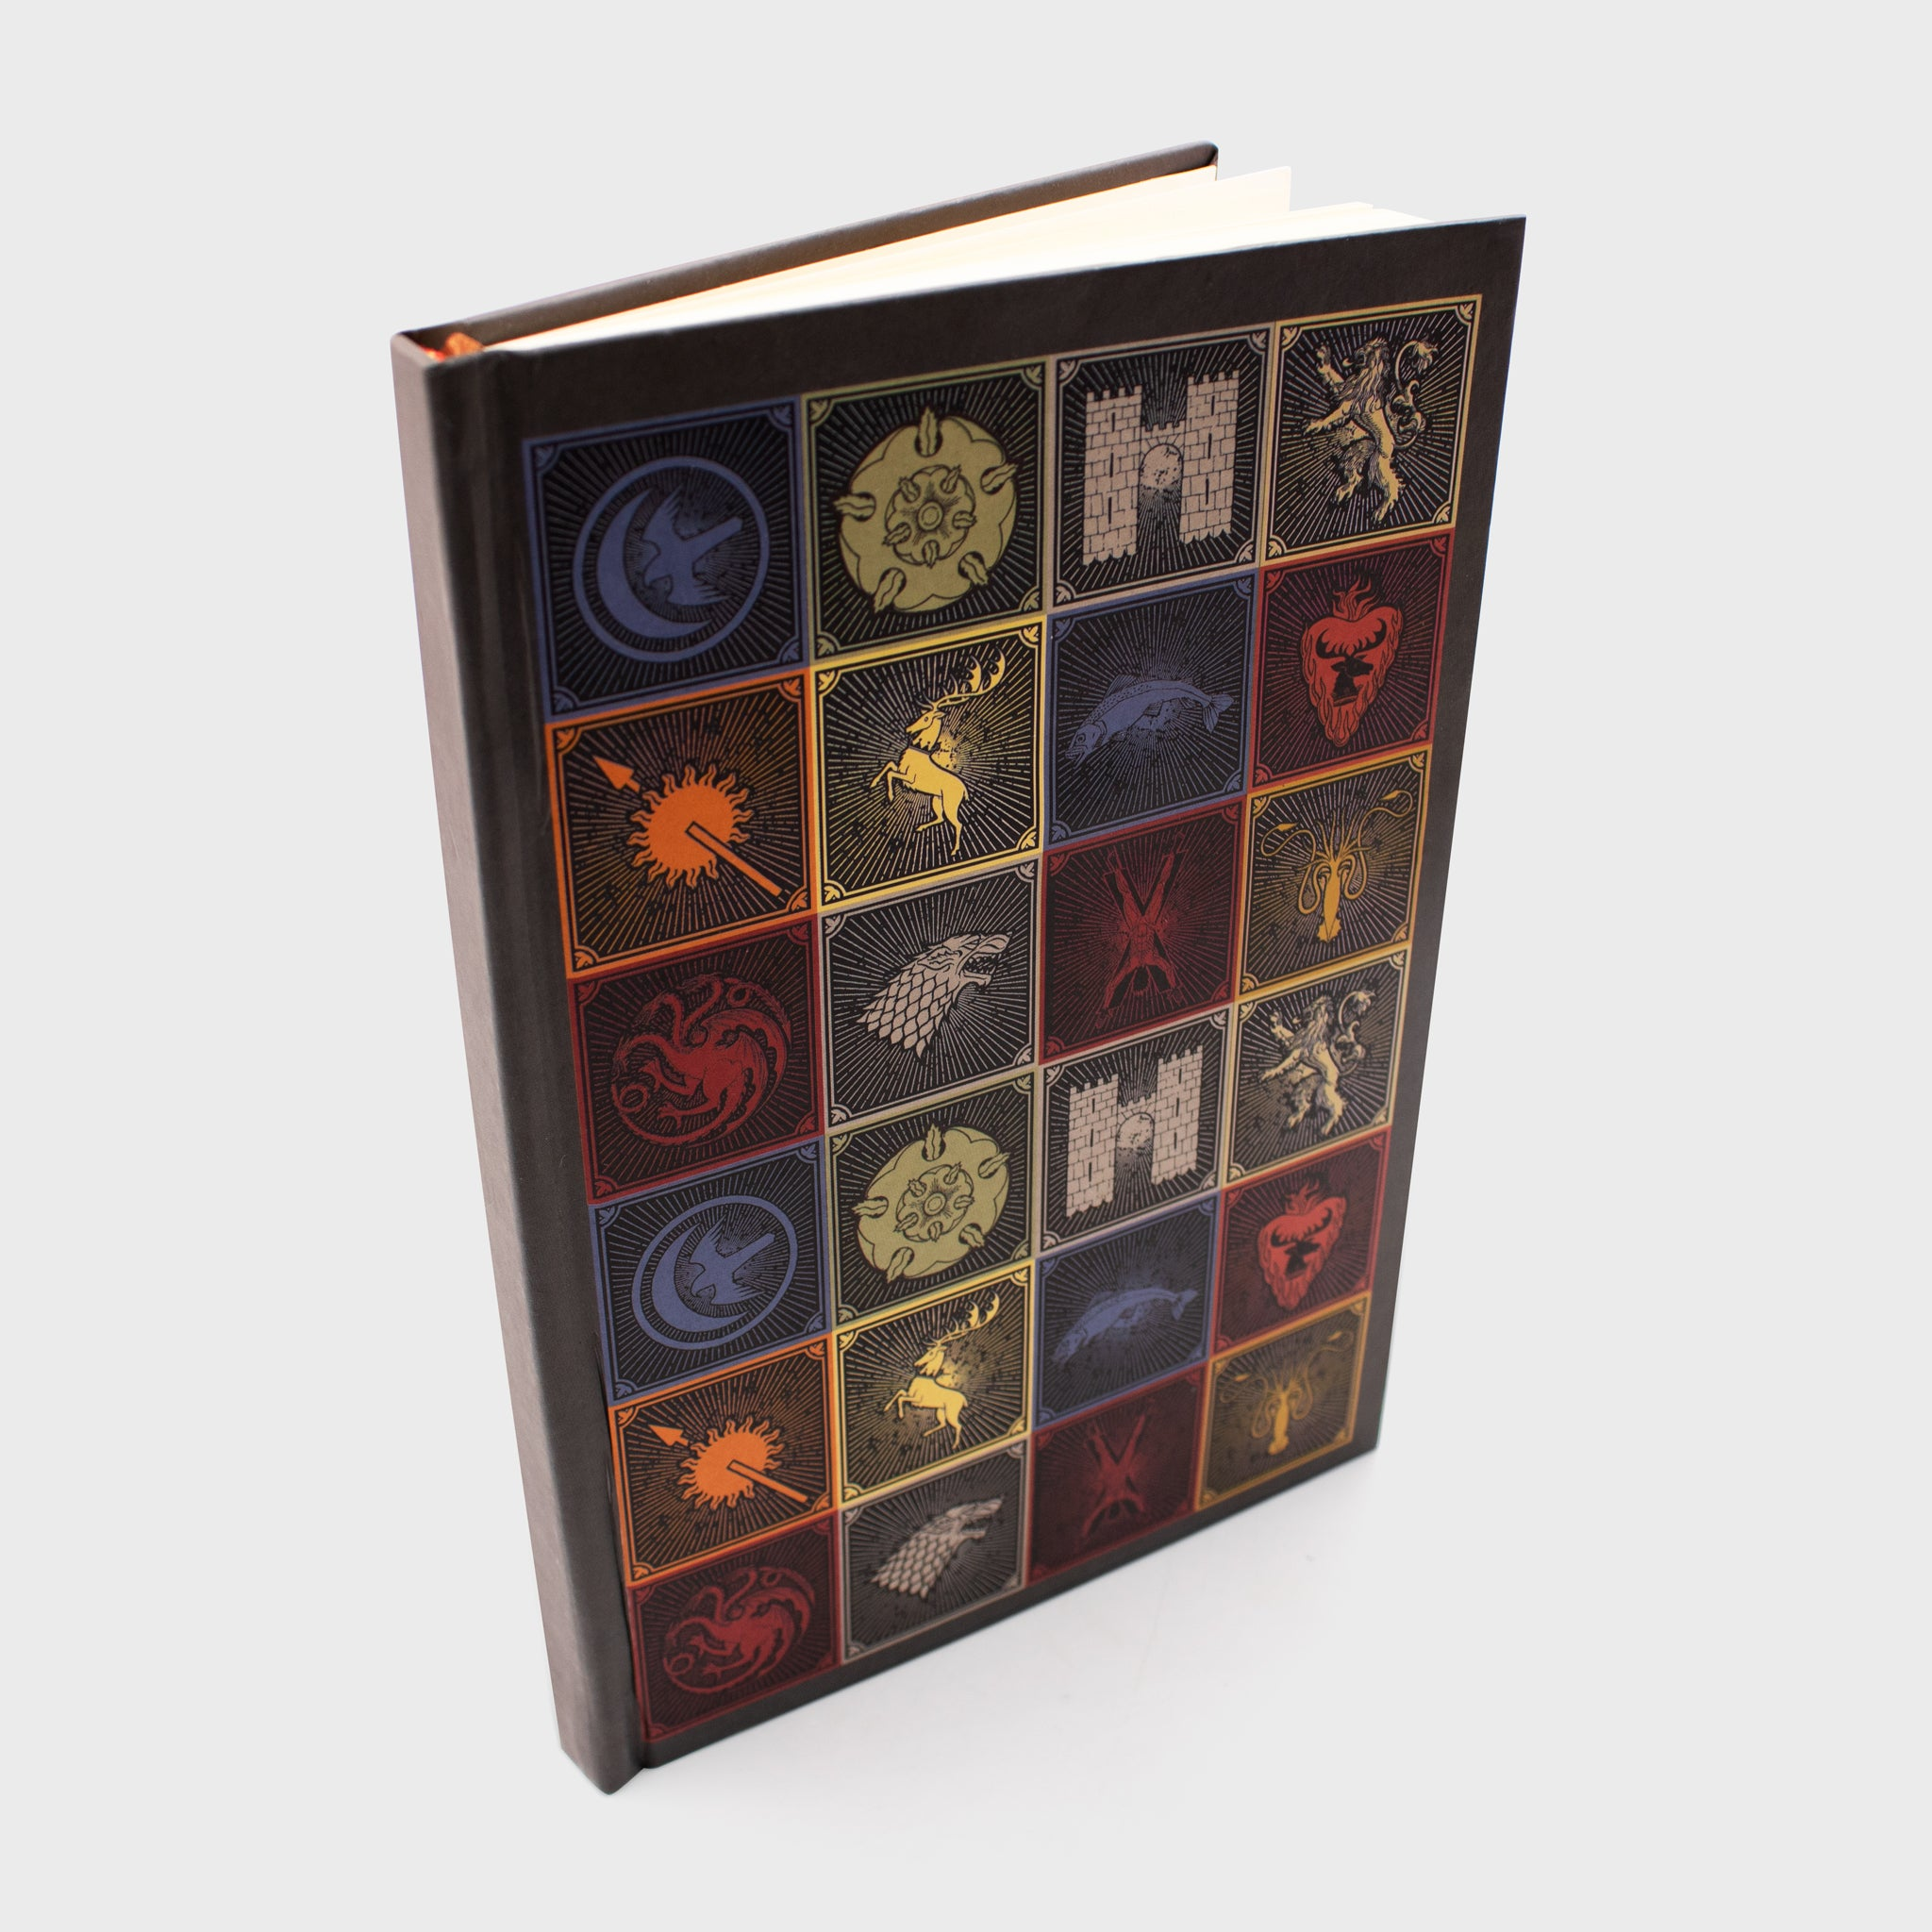 game of thrones got box collectibles exclusives notebook journal house sigil collector collection culturefly